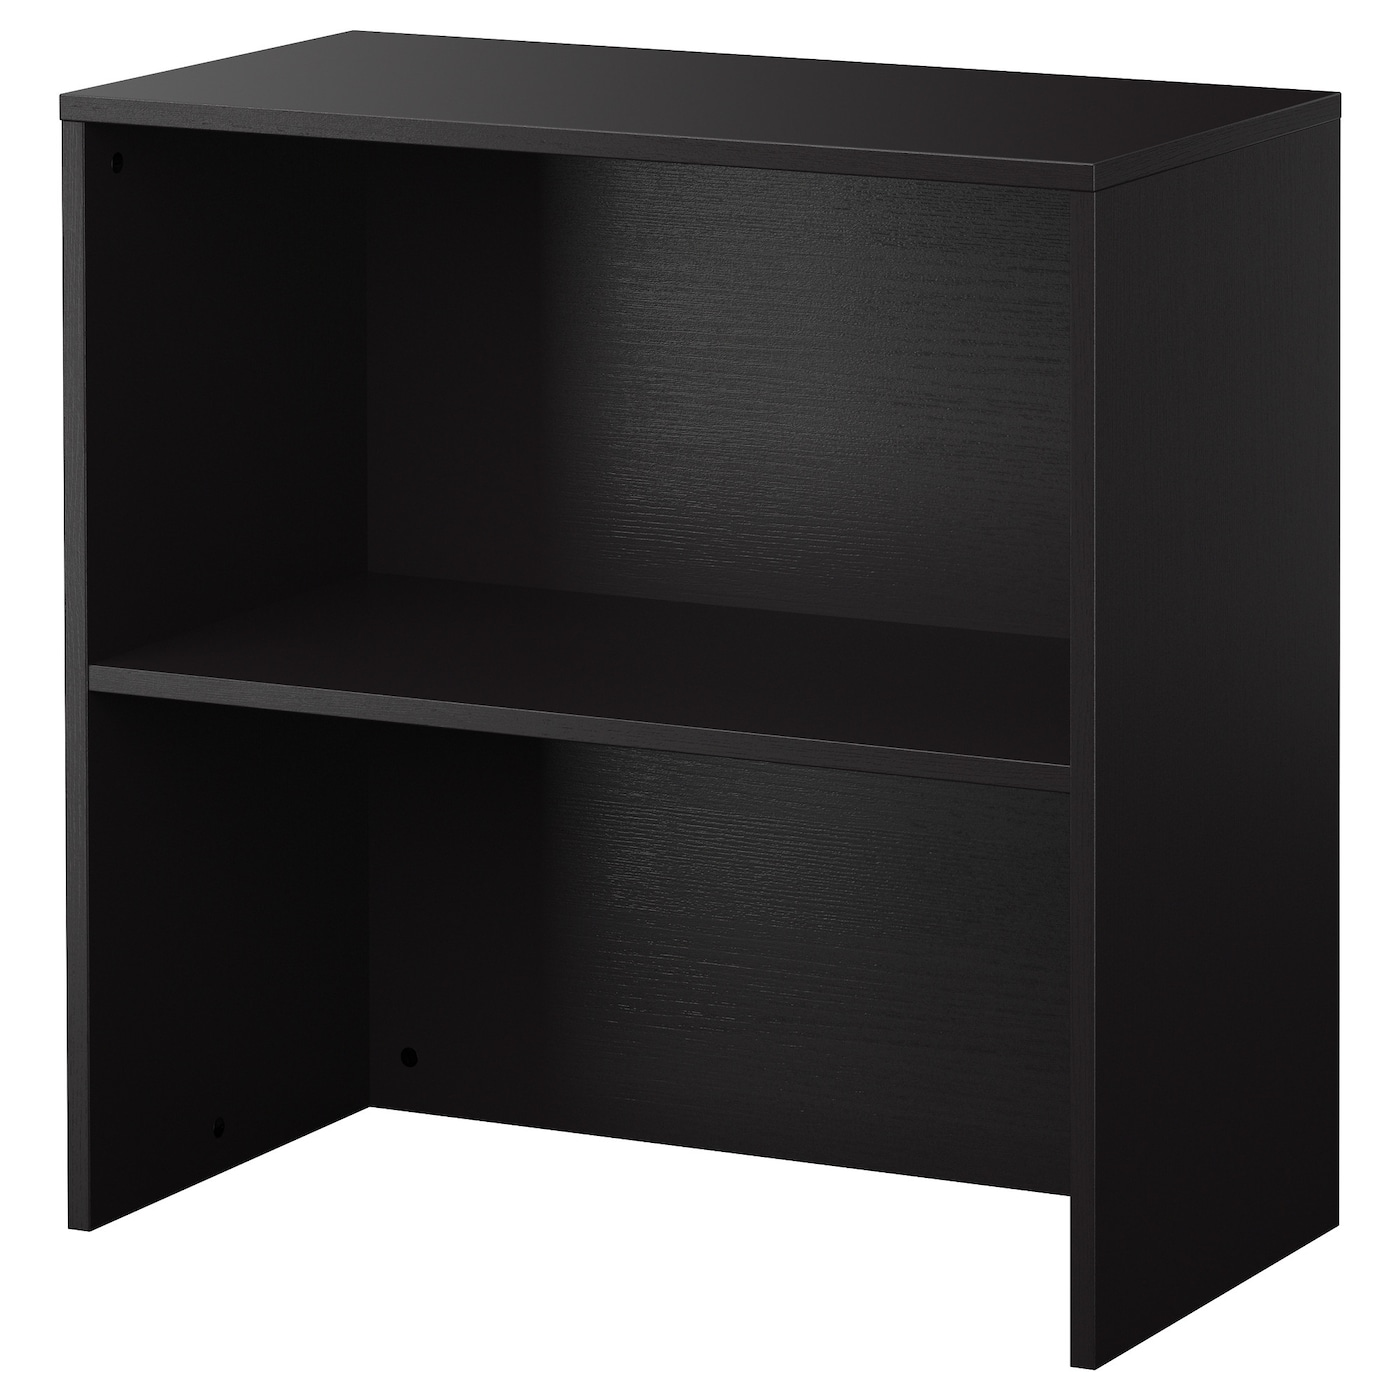 armoires de bureau etag res de bureau ikea belgique. Black Bedroom Furniture Sets. Home Design Ideas